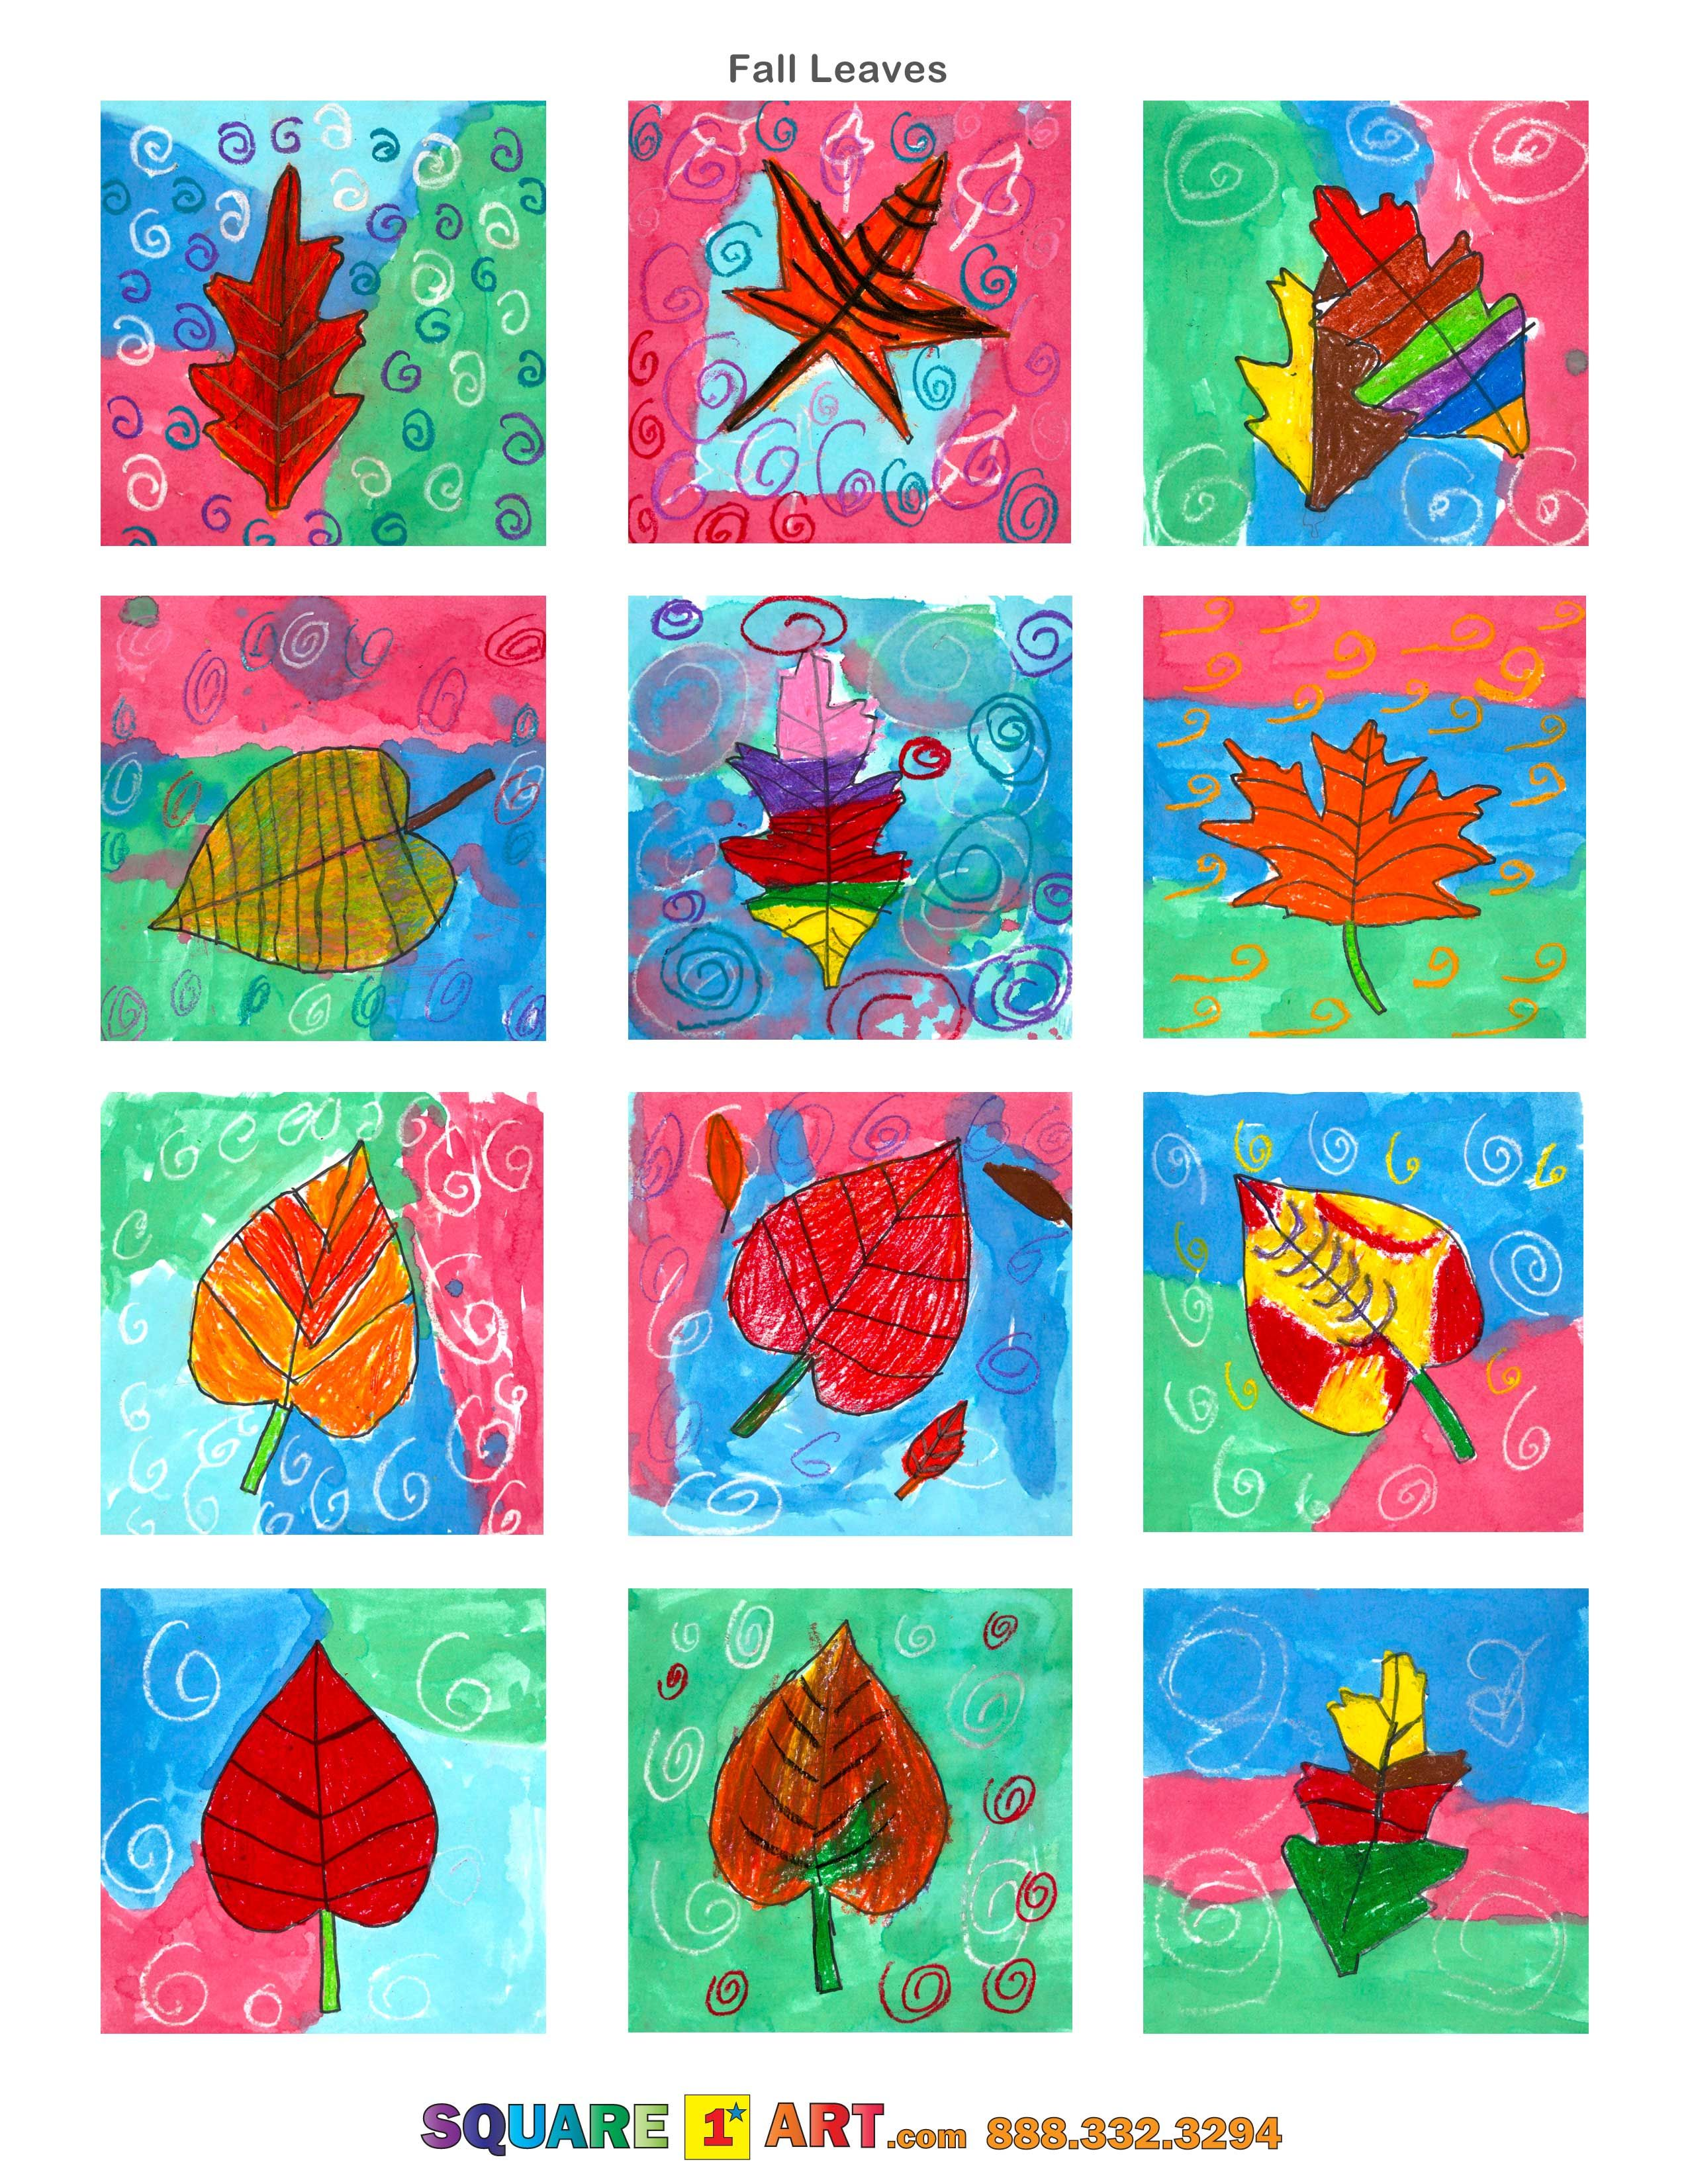 Fall Leaves Medium Watercolor Background Oil Pastel